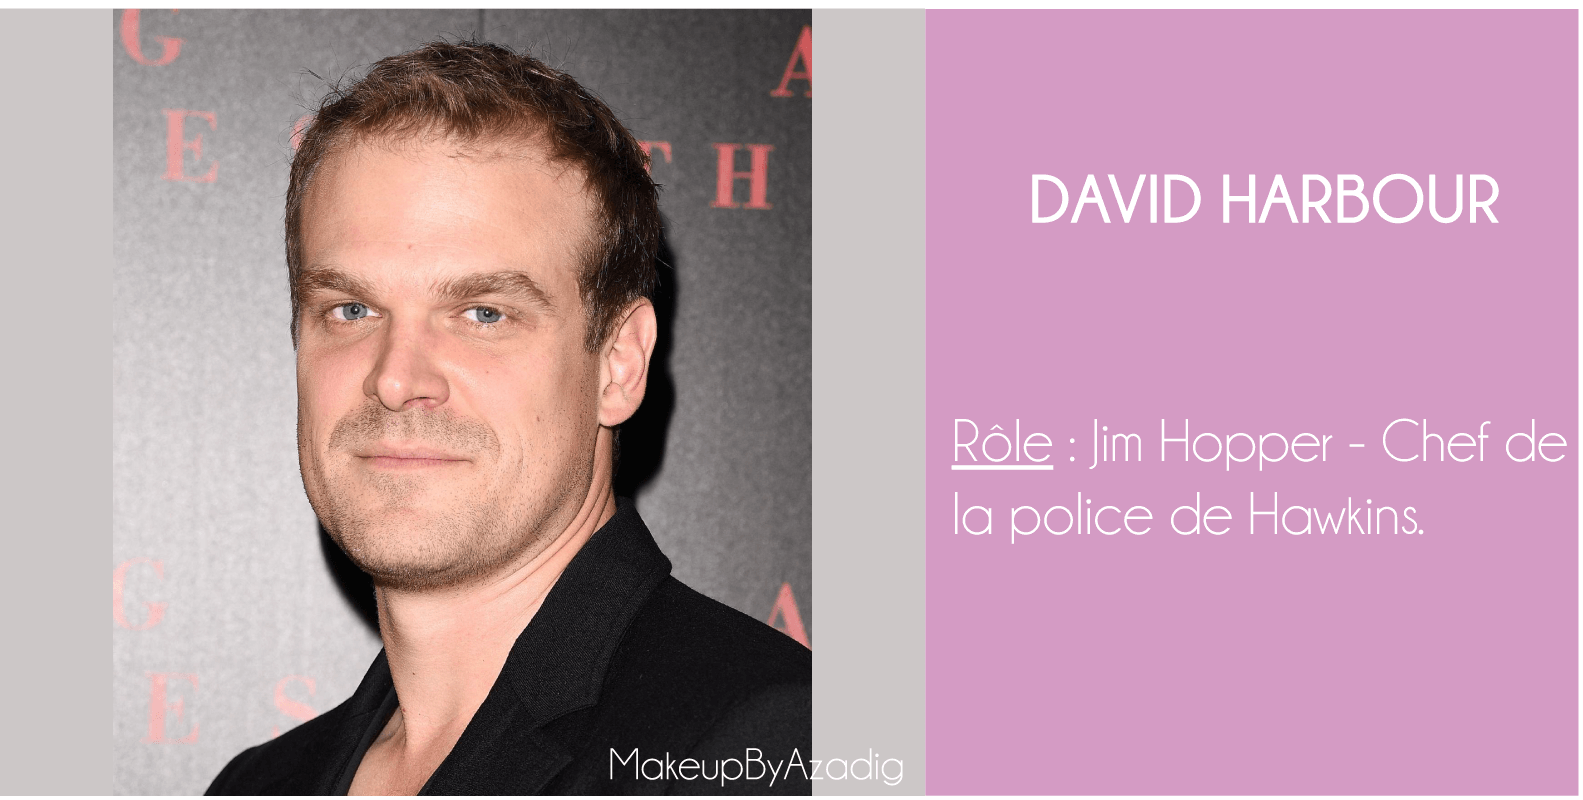 david-harbour-makeupbyazadig-stranger things-netflix-serie